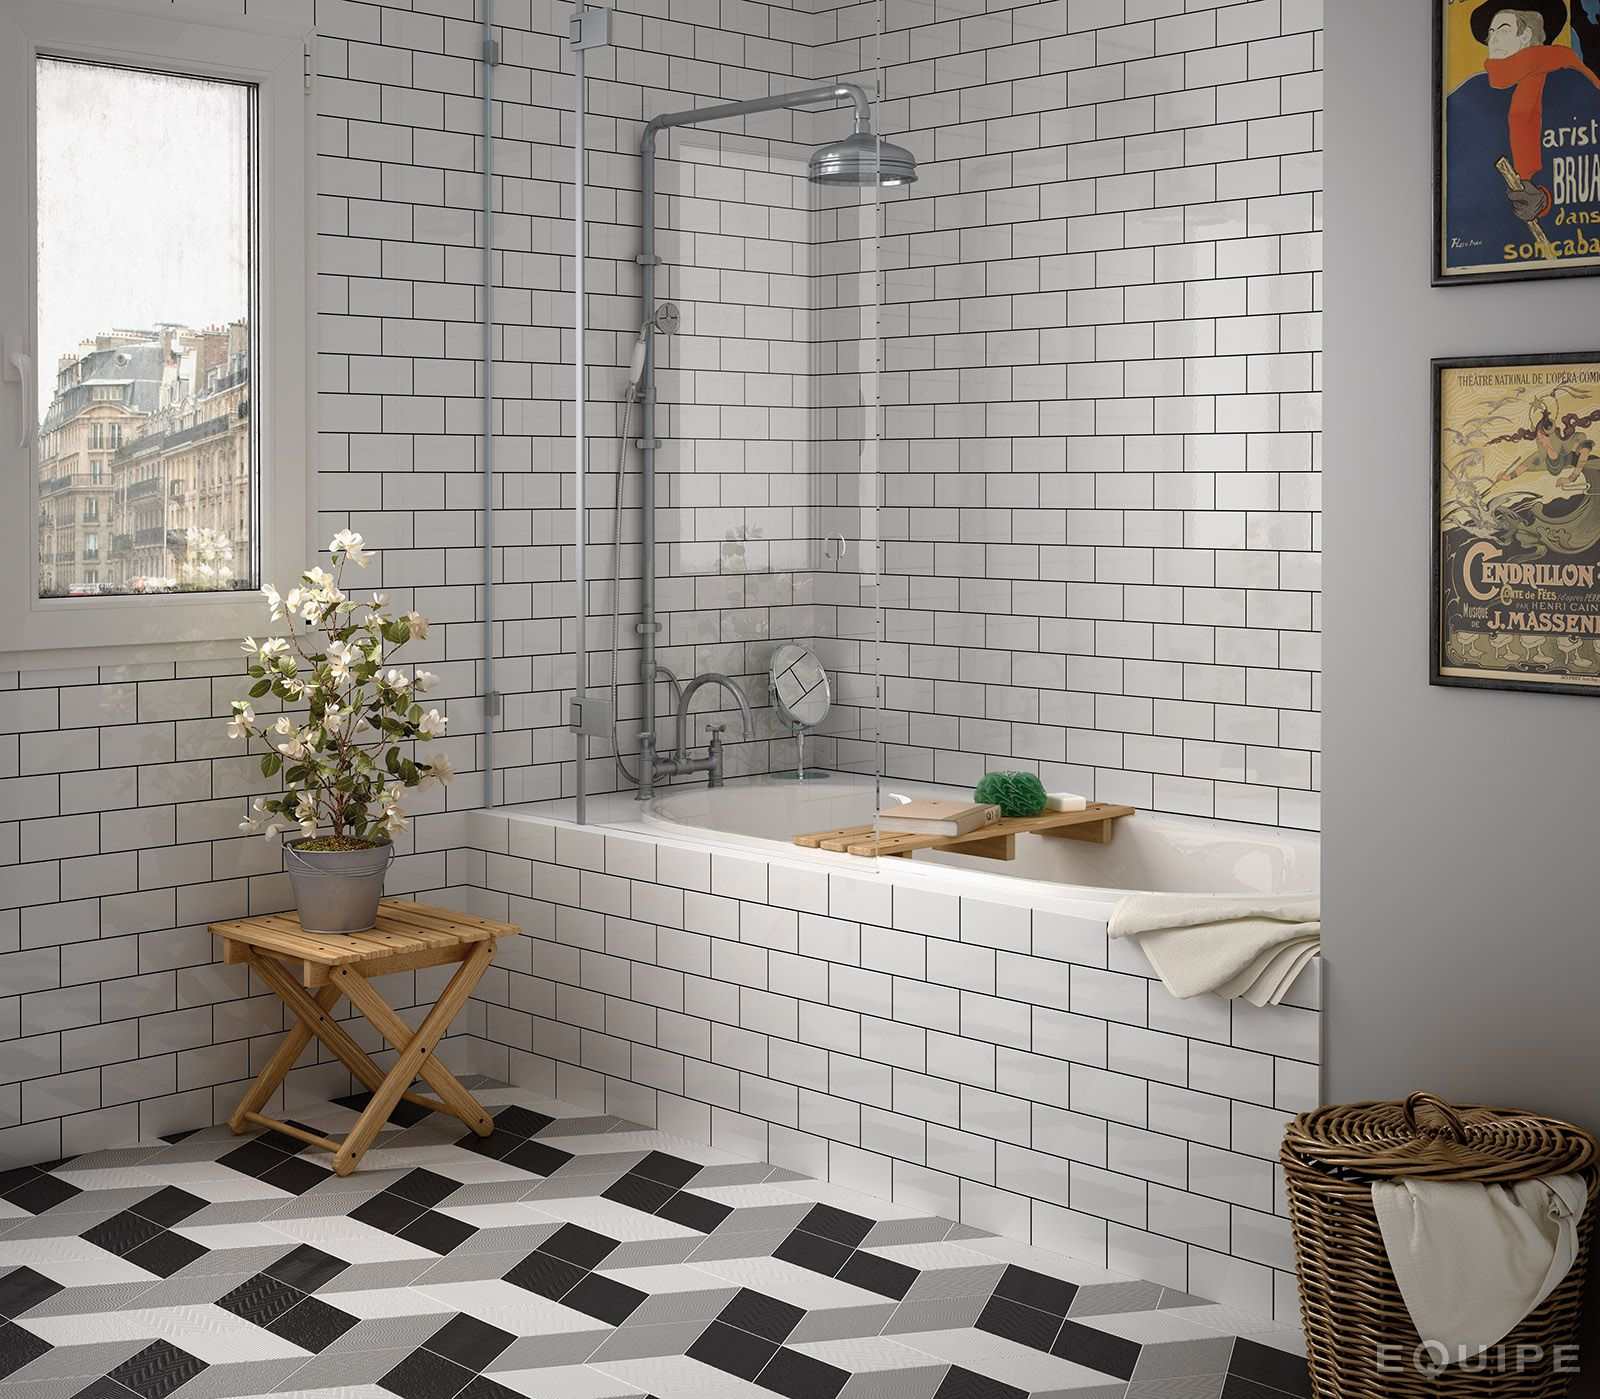 Metro Tile Design evolution blanco brillo 7,5x15 | inspiring ideas | pinterest